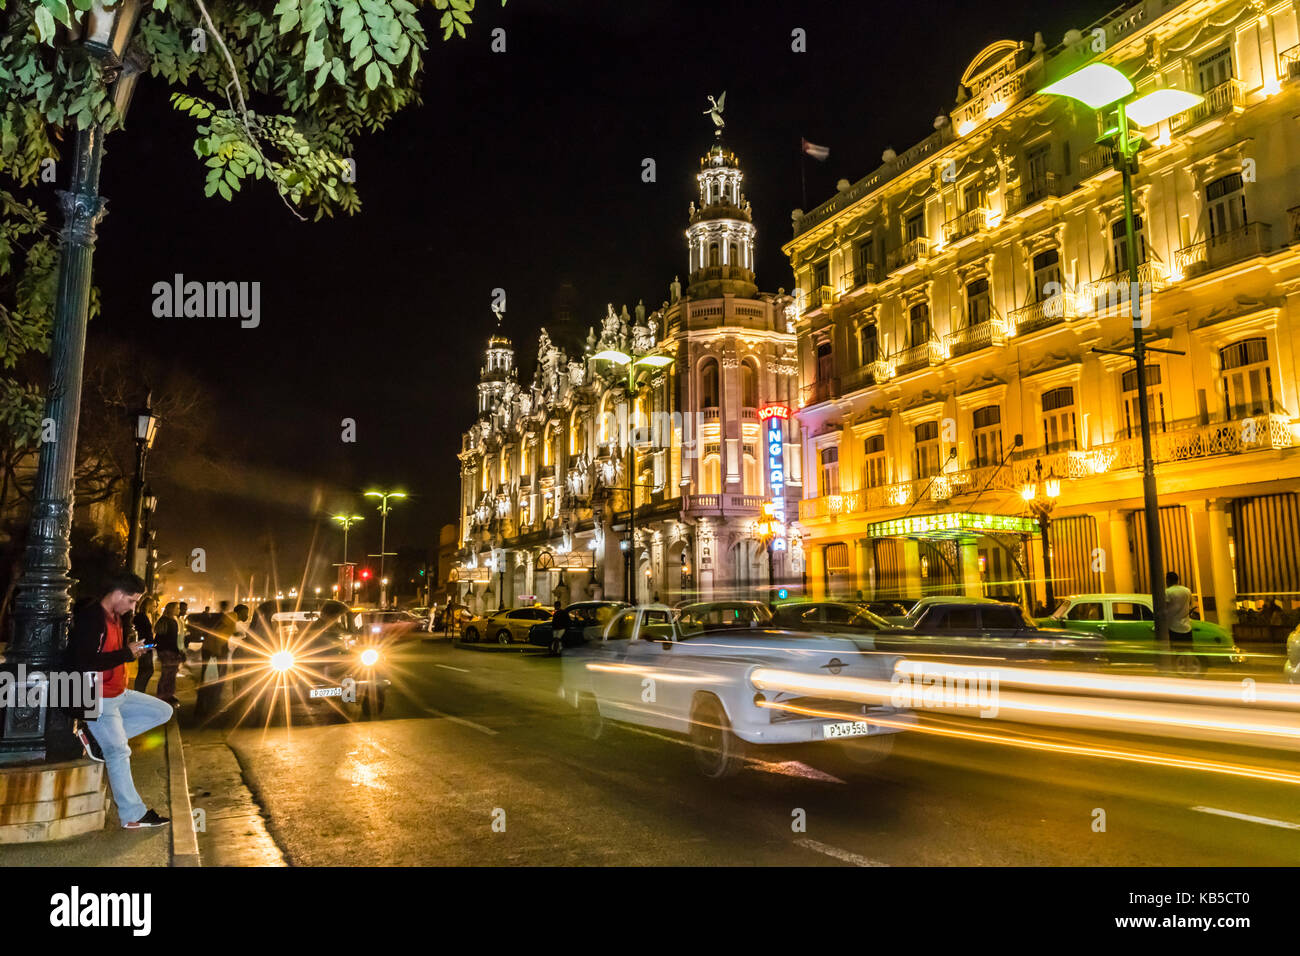 Cityscape view of the Hotel Inglaterra taken at night, taken from the Prado in old Havana, Cuba, West Indies, Central - Stock Image